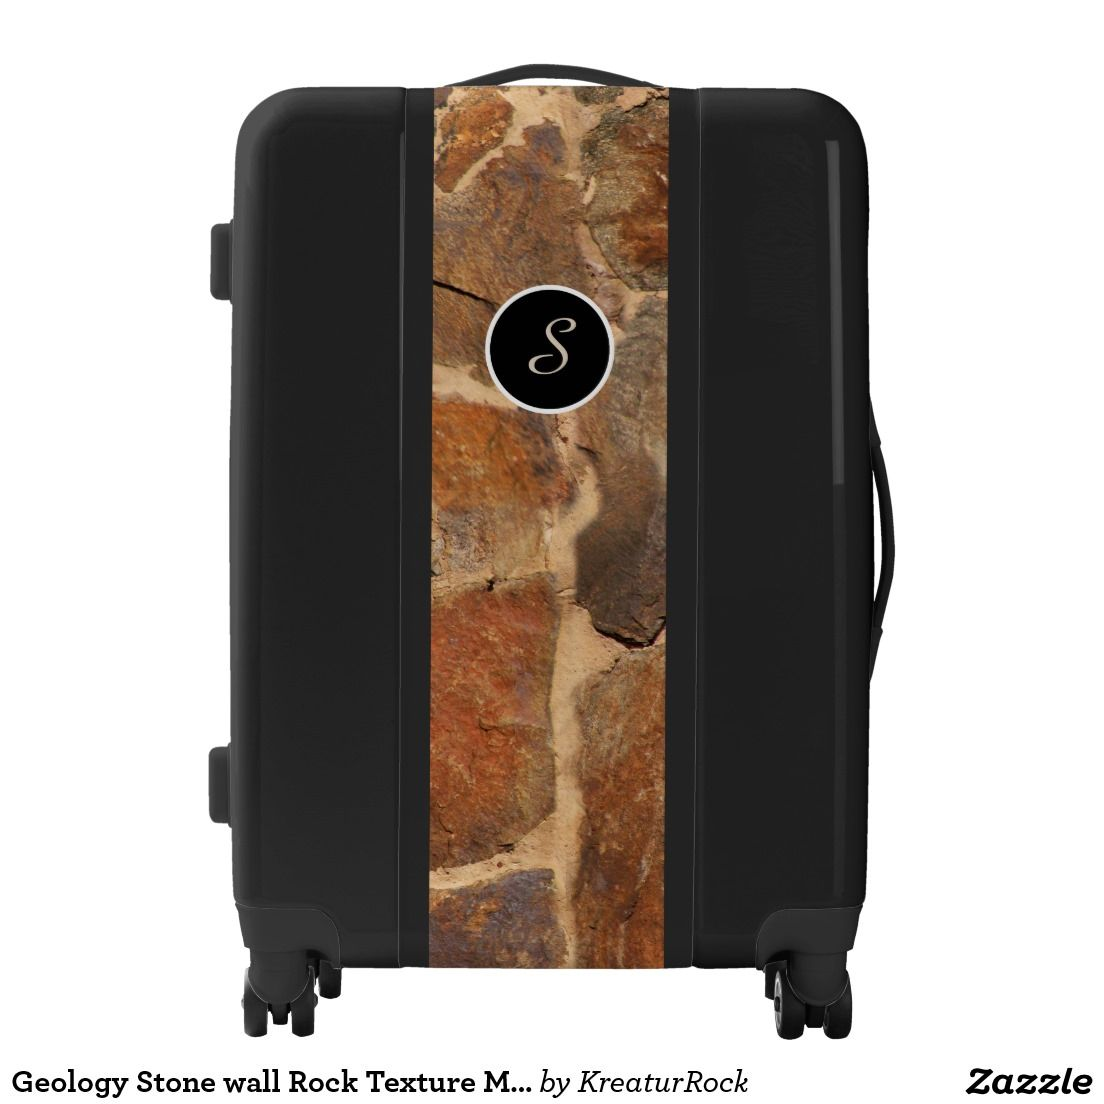 Geology Stone wall Rock Texture Monogram Luggage Case